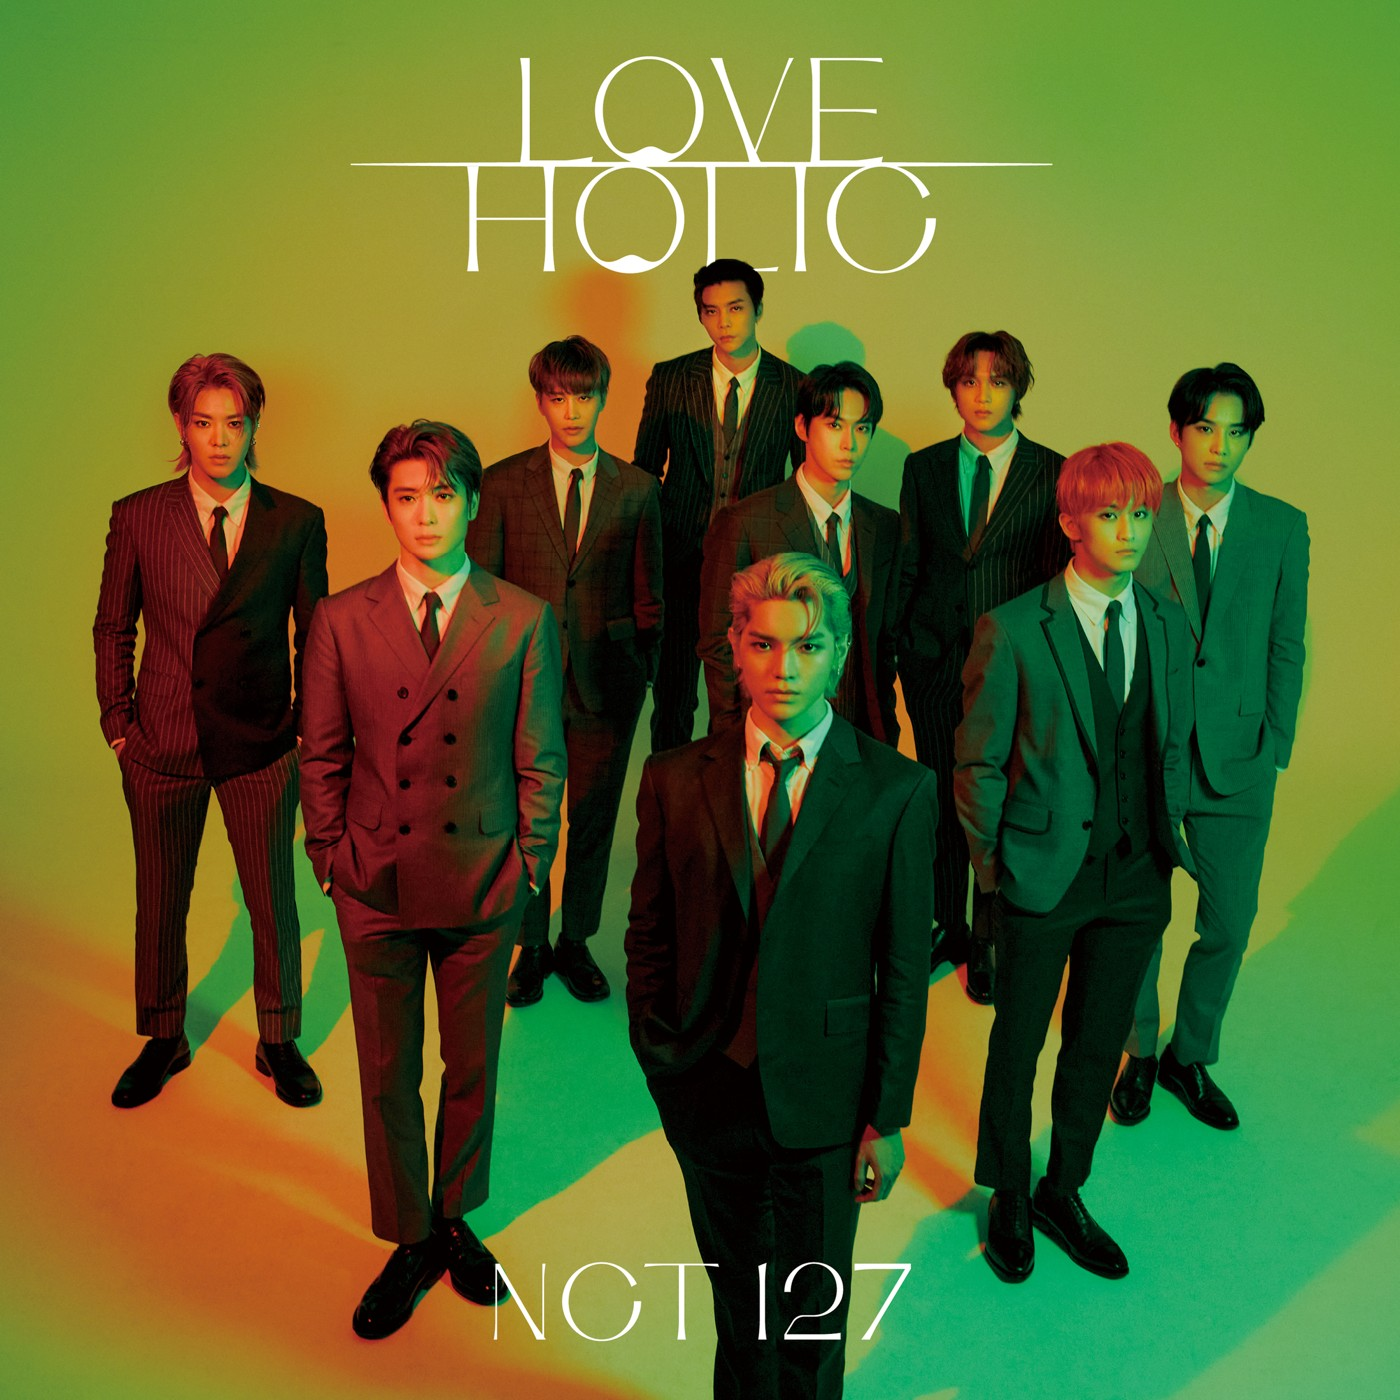 NCT 127 – LOVEHOLIC [FLAC + MP3 320 / WEB] [2021.02.17]